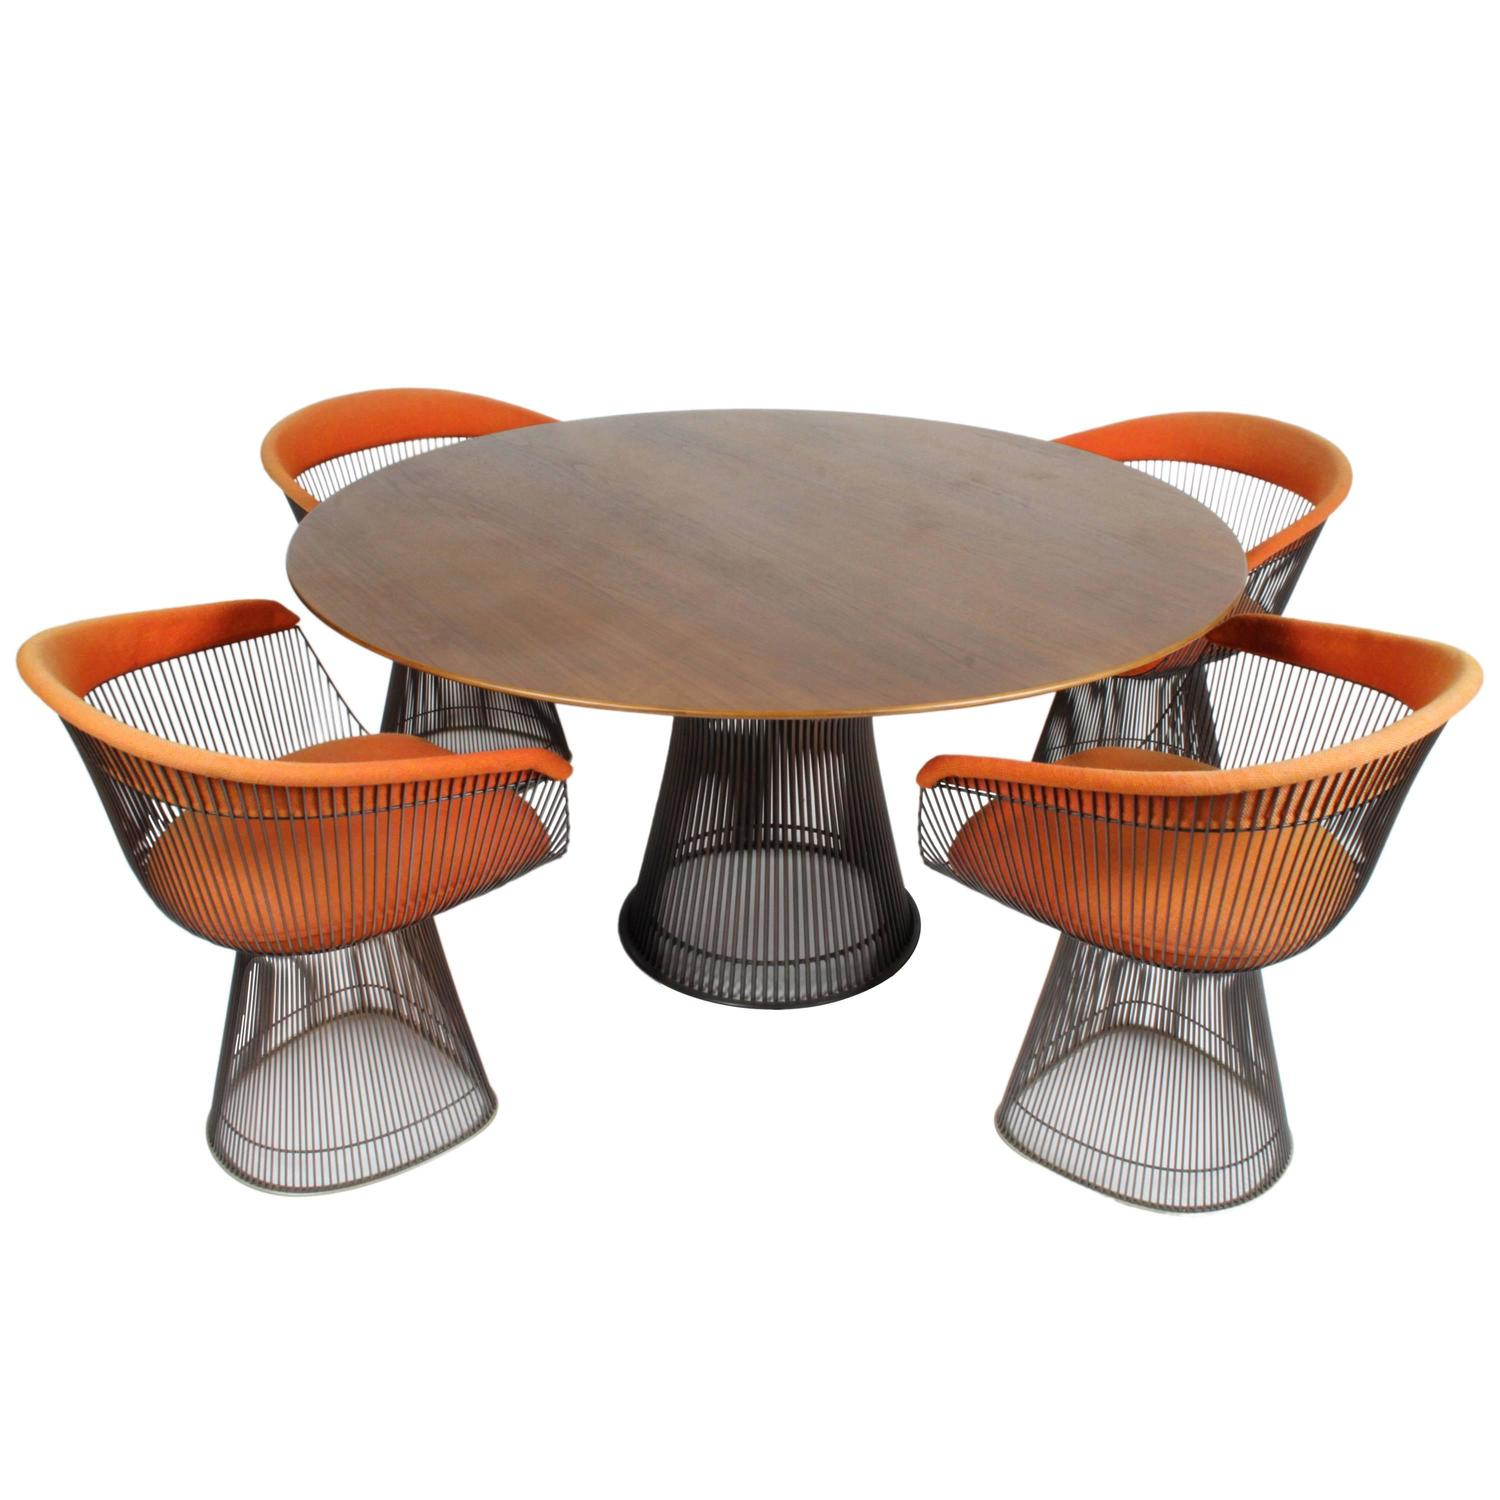 Warren Platner Furniture Intended Warren Platner Bronze Dining Set For Knoll Circa 1960s Teak Top At 1stdibs